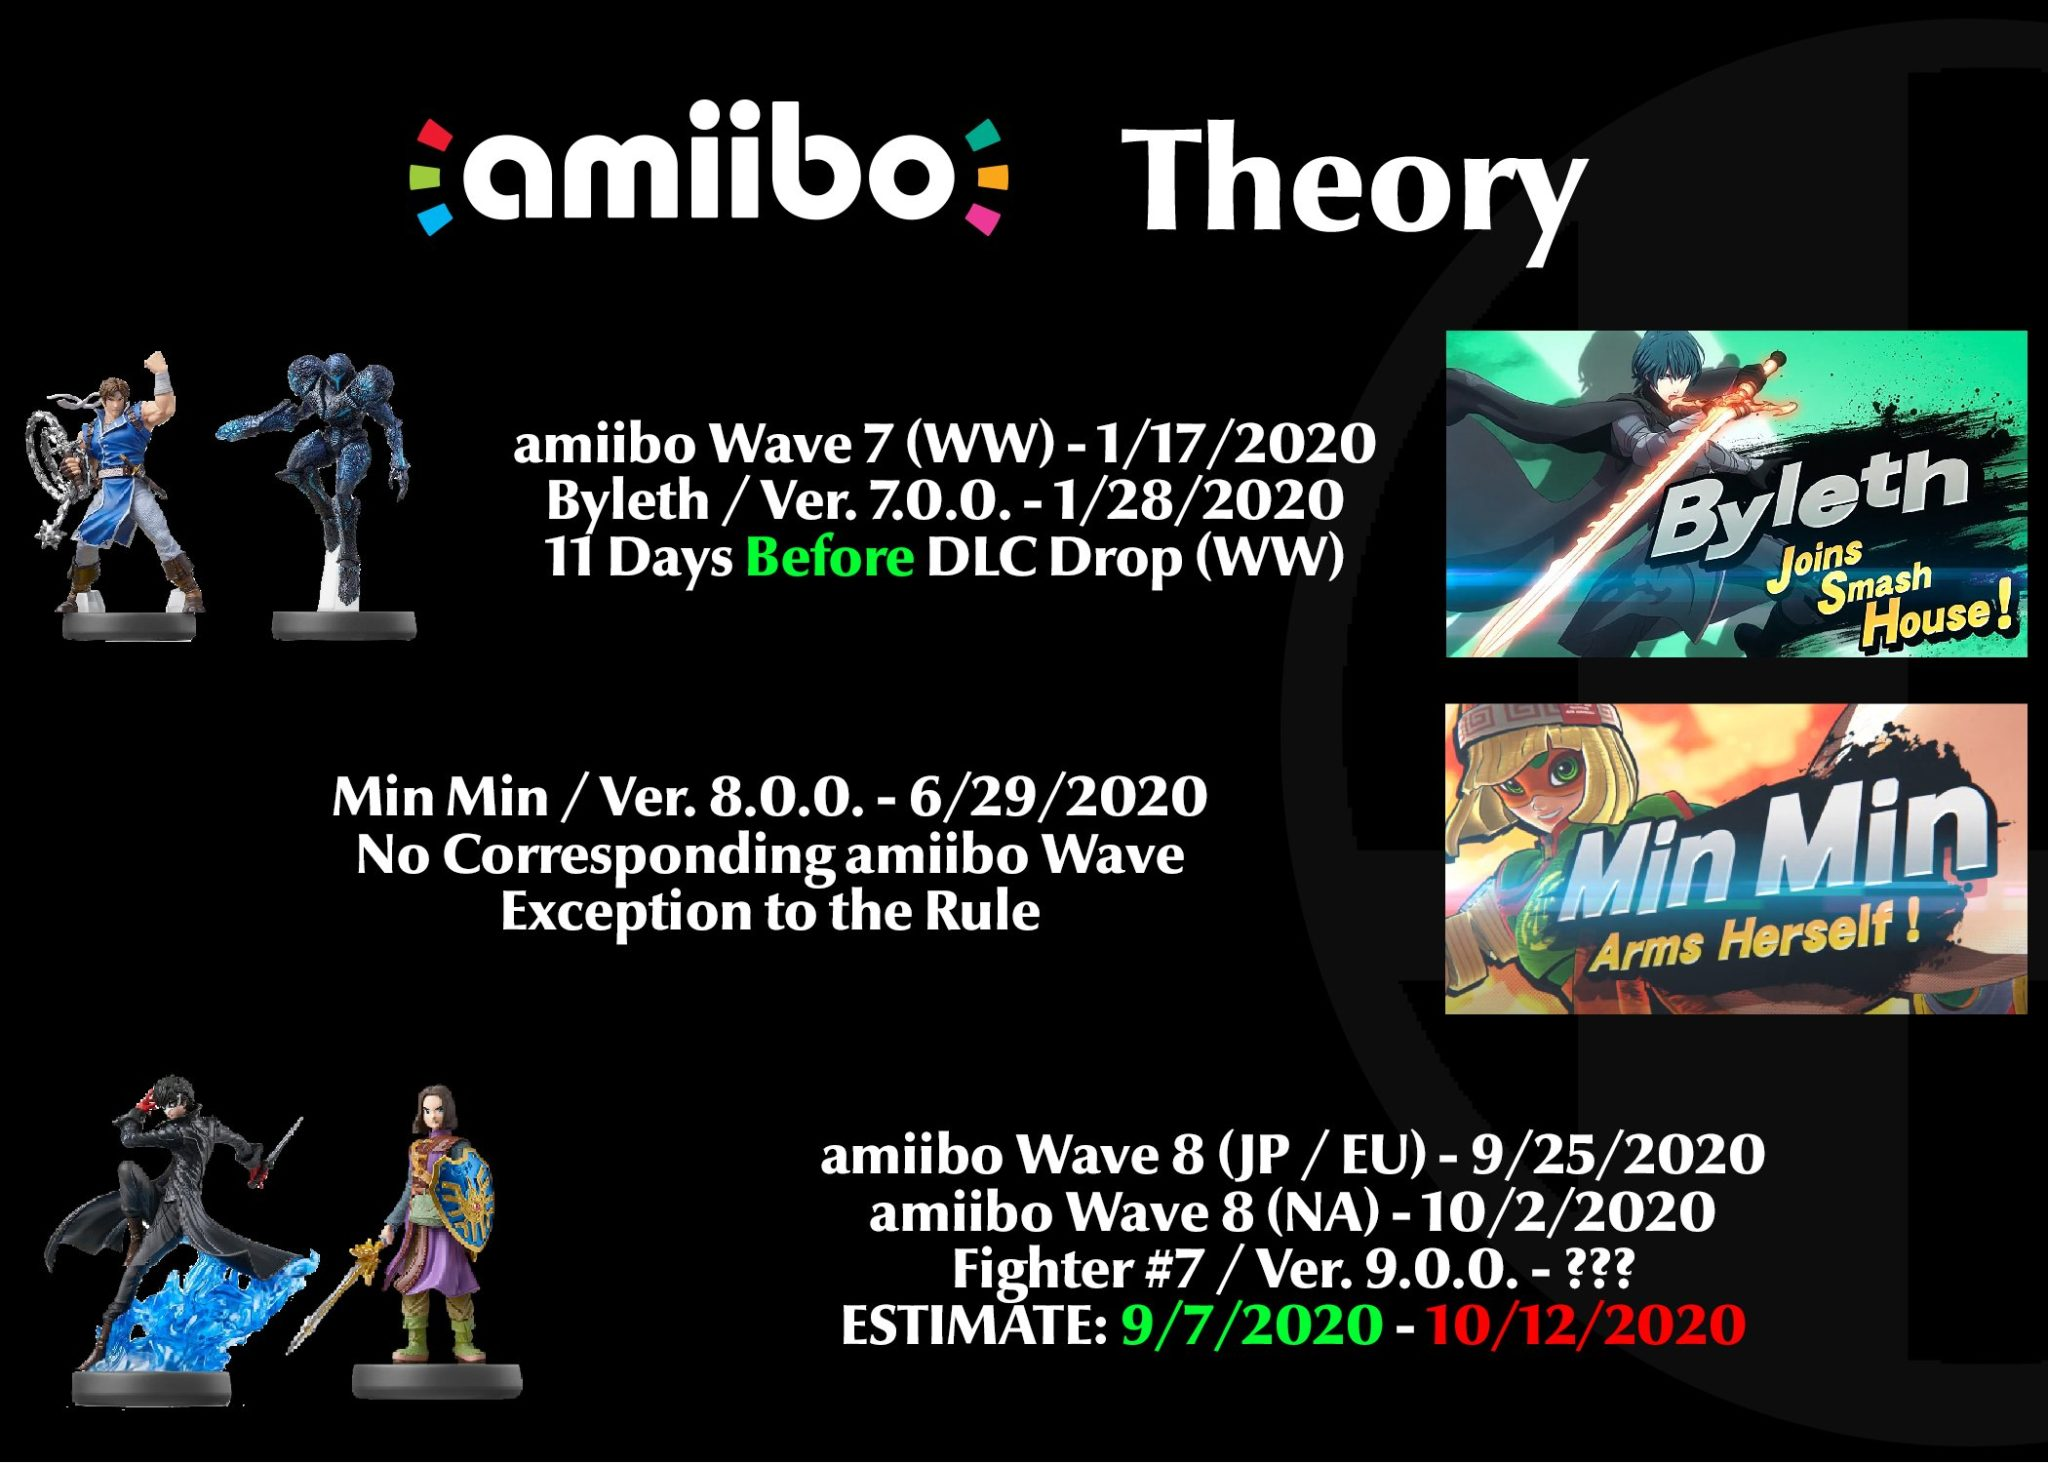 Amiibo Theory suggests a DLC figher coming soon